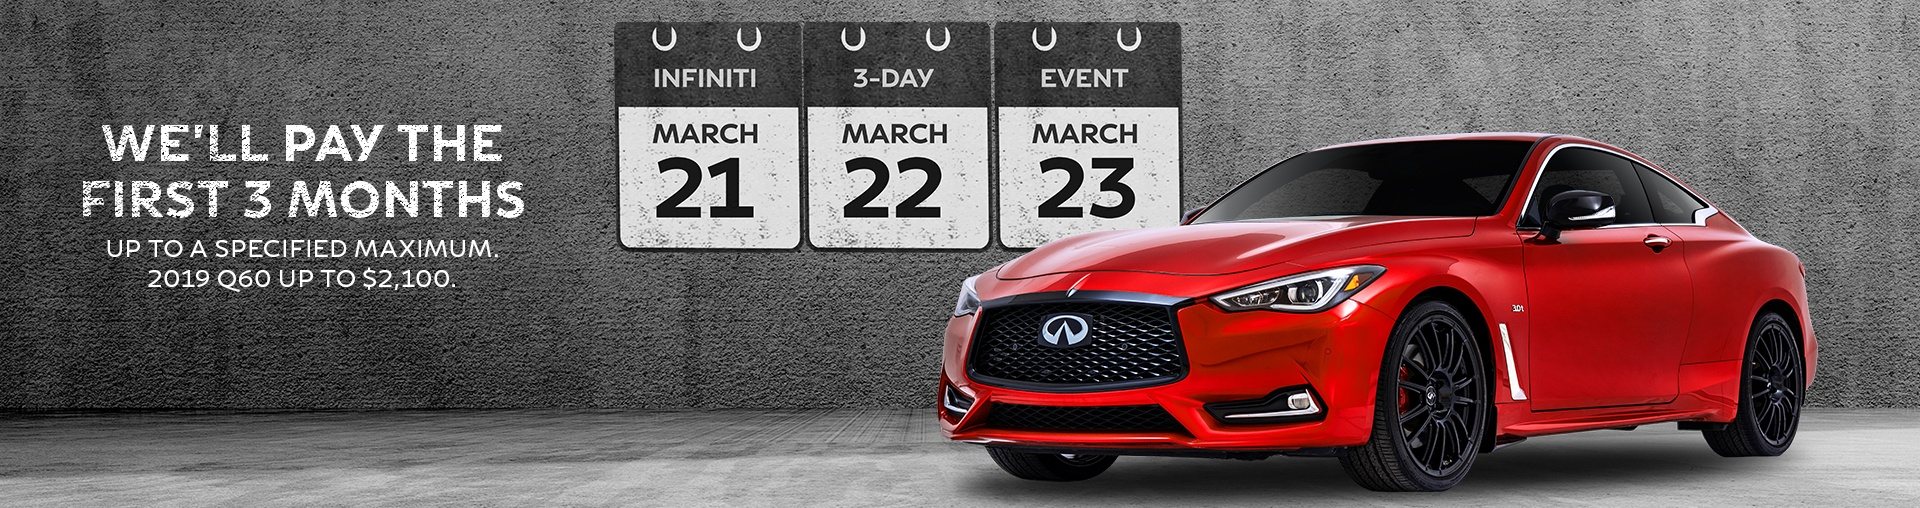 Infiniti Black Friday Event, November 21st to 23rd